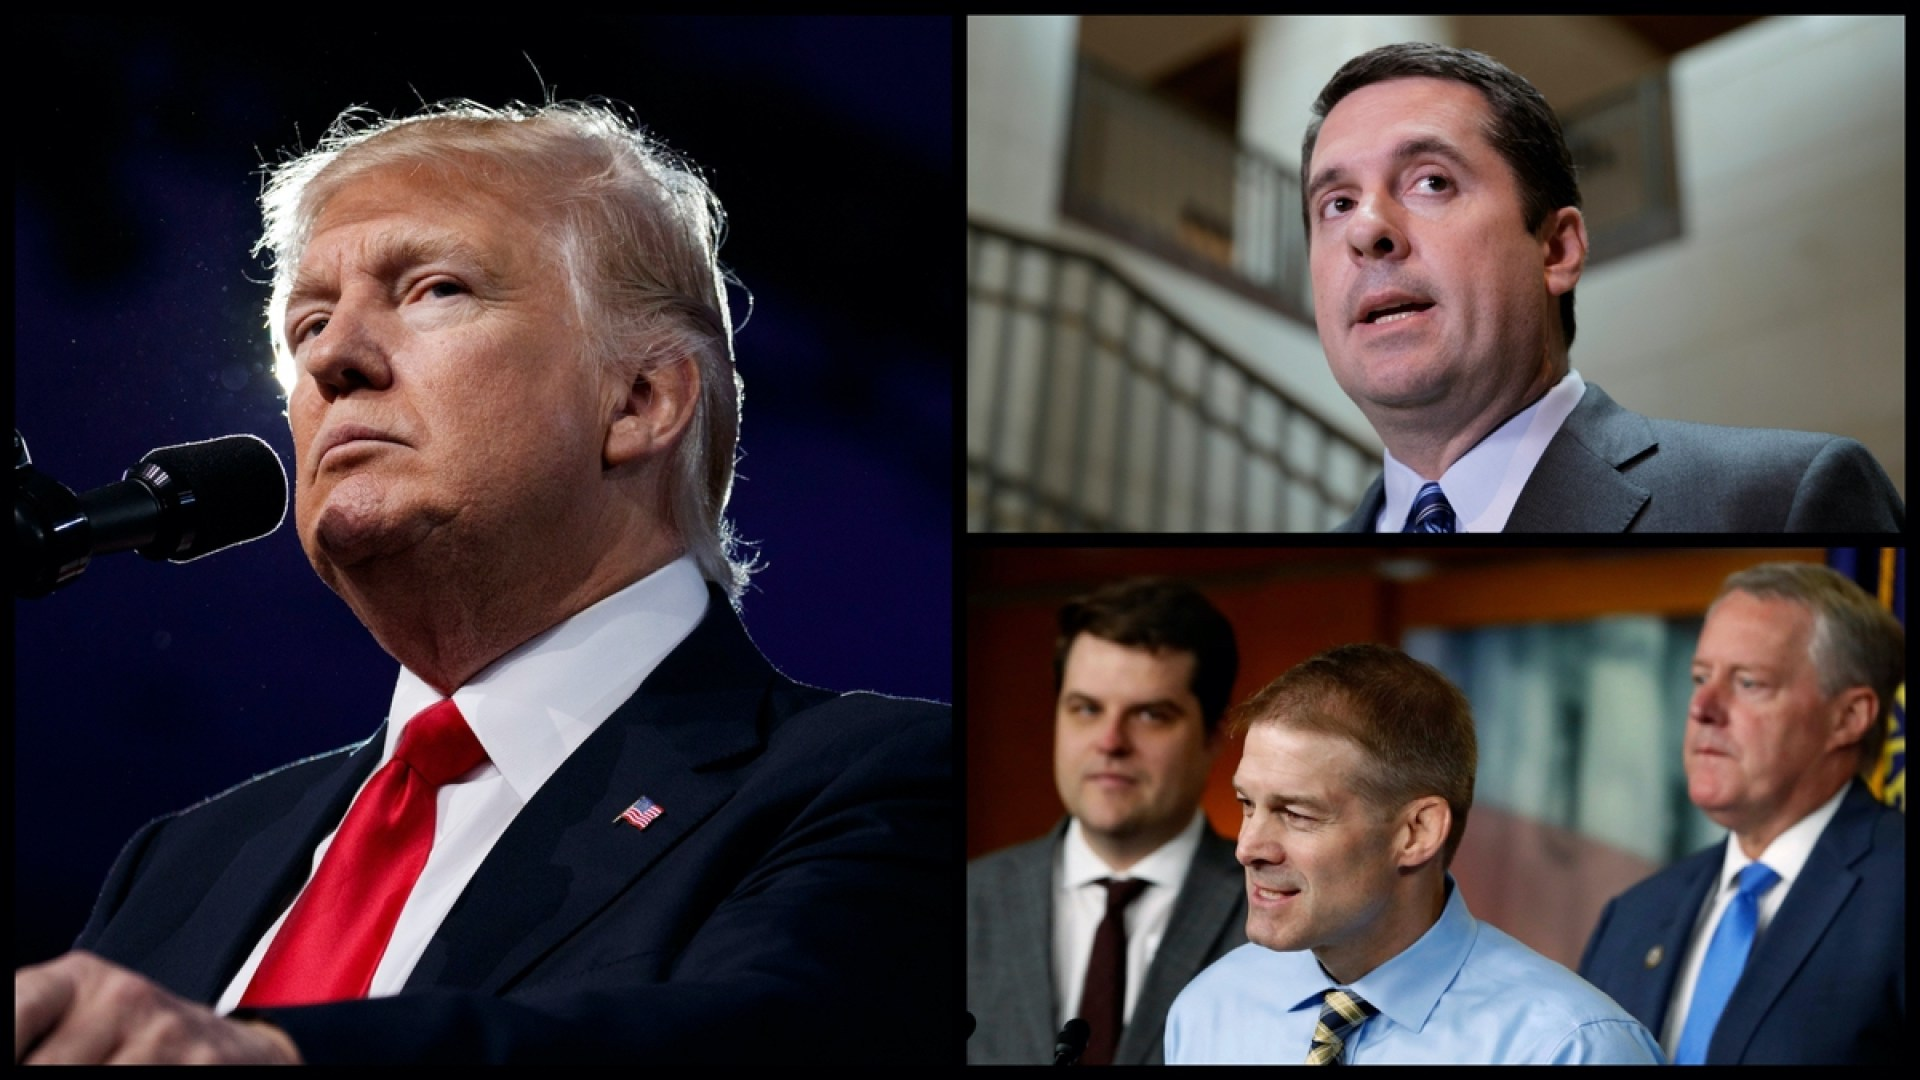 From Left: President Donald Trump, Ranking House Intelligence Committee Member Rep. Devin Nunes (R-CA), House Freedom Caucus Members Rep. Jim Jordan (R-OH), Rep. Matt Gaetz (R-FL) and Chairman Rep. Mark Meadows (R-NC) - (AP Photo)